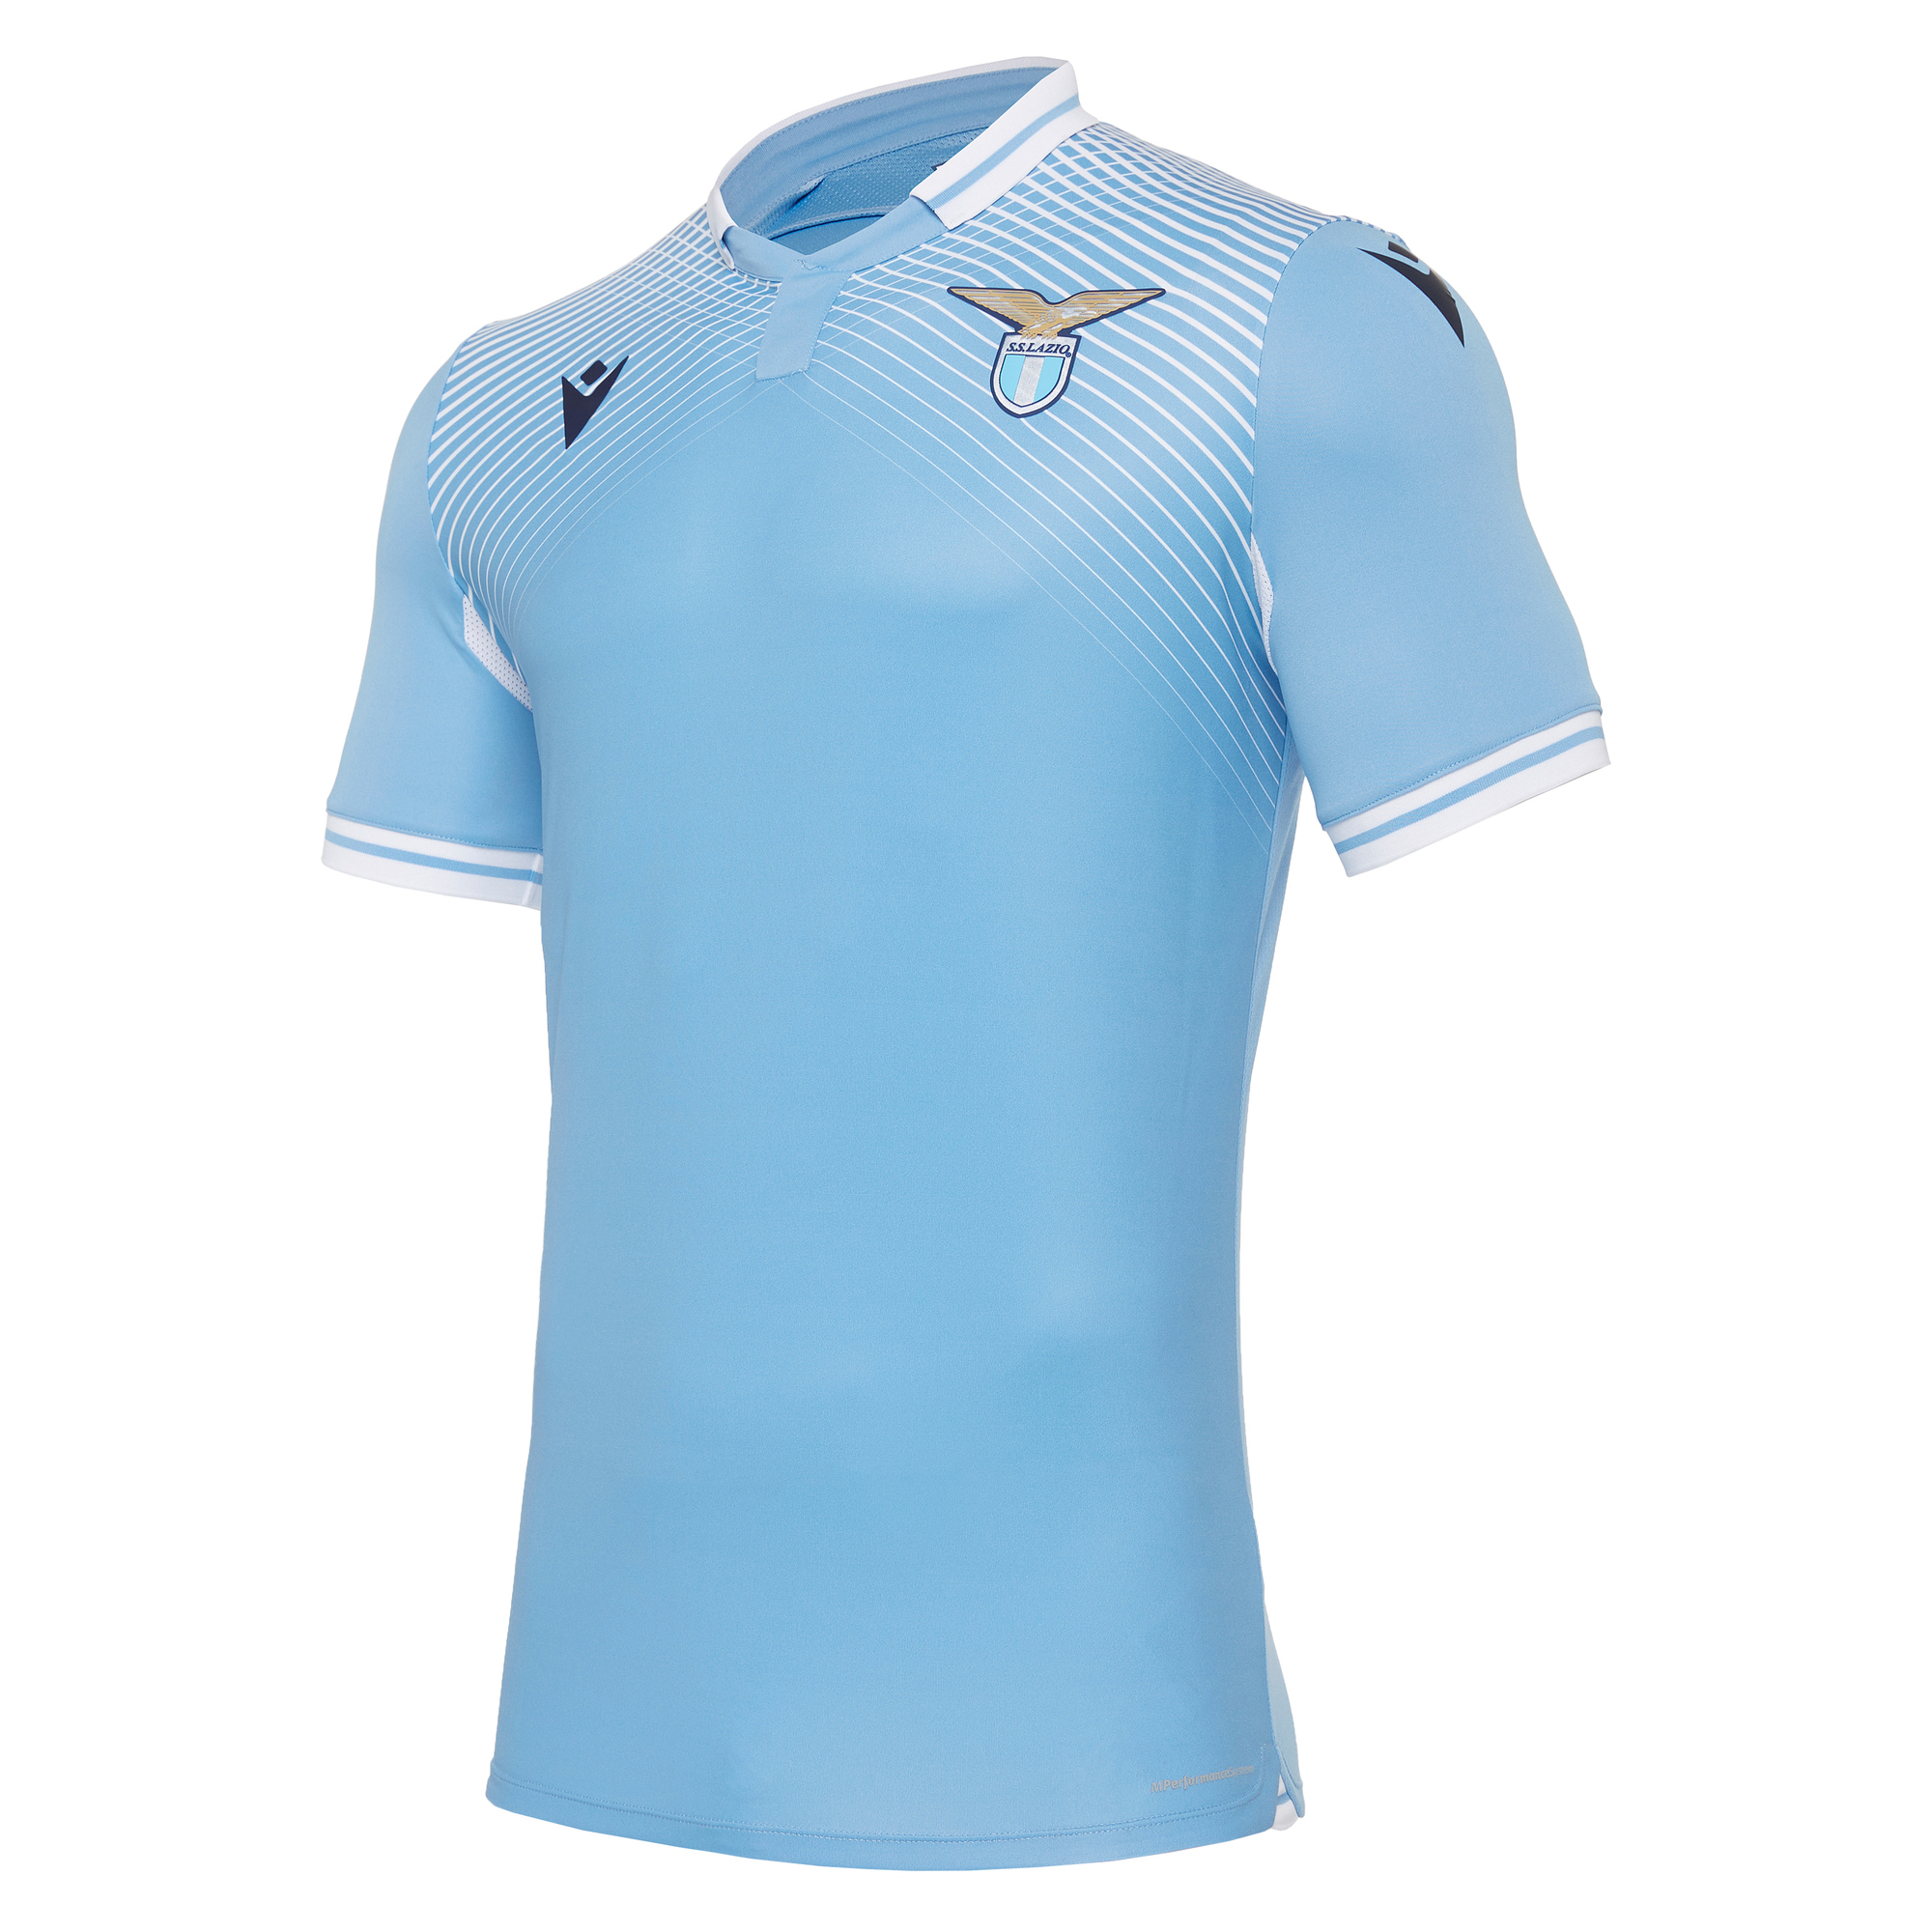 Lazio 2020 21 Home 3rd Kits By Macron Forza27